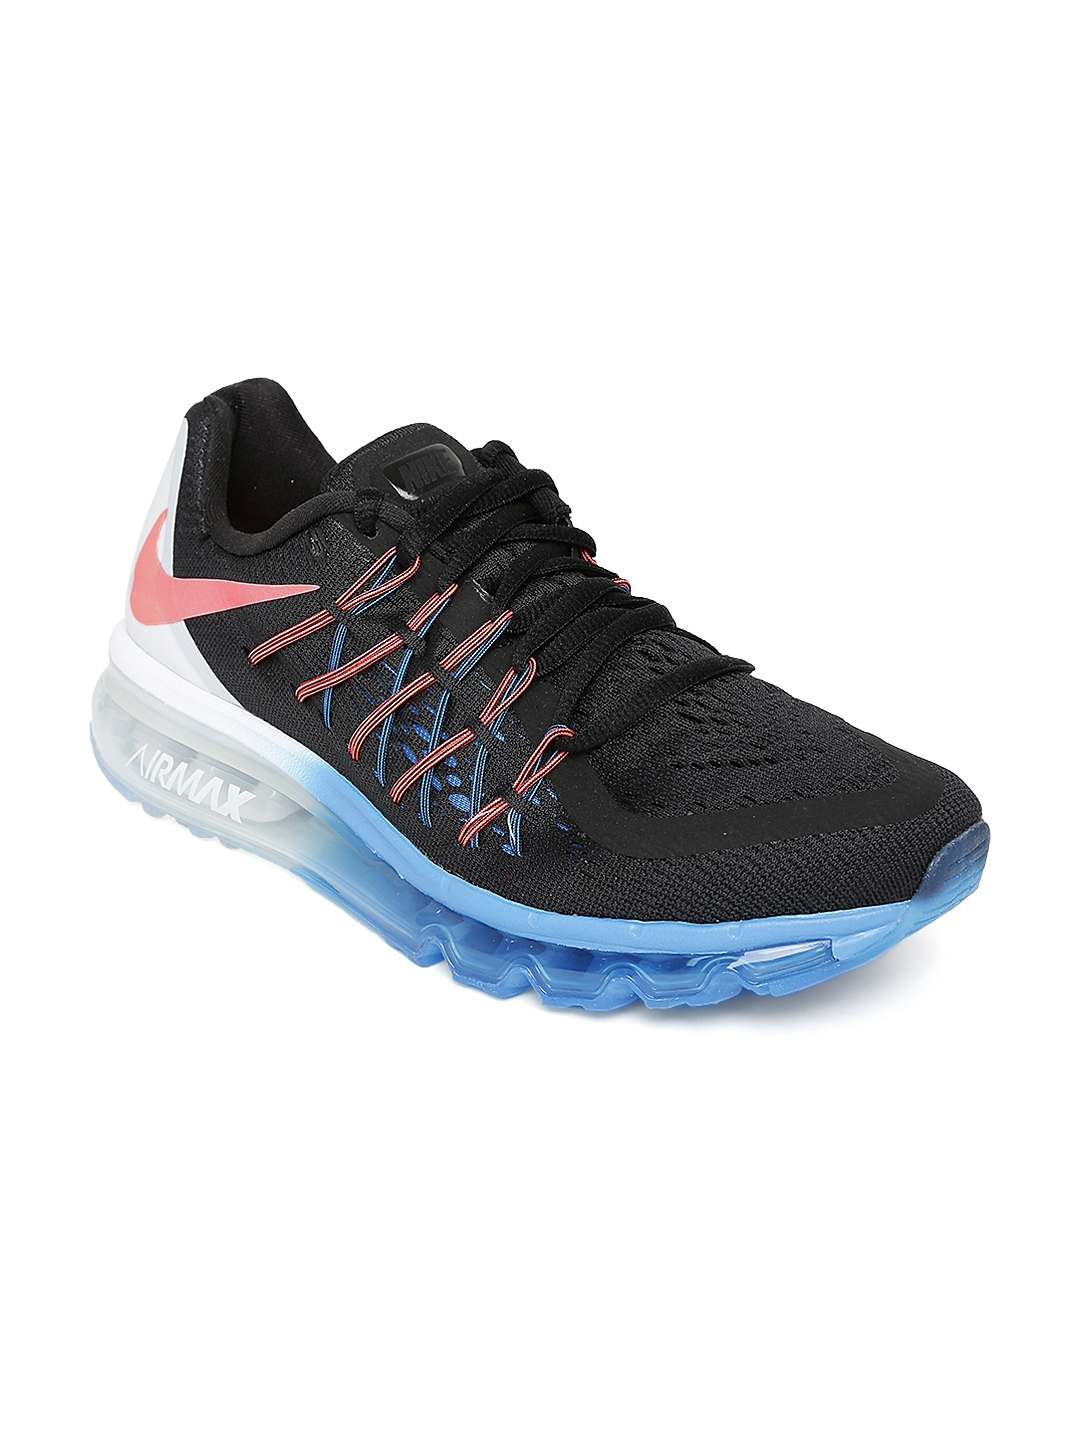 myntra nike black air max running shoes 731379 buy